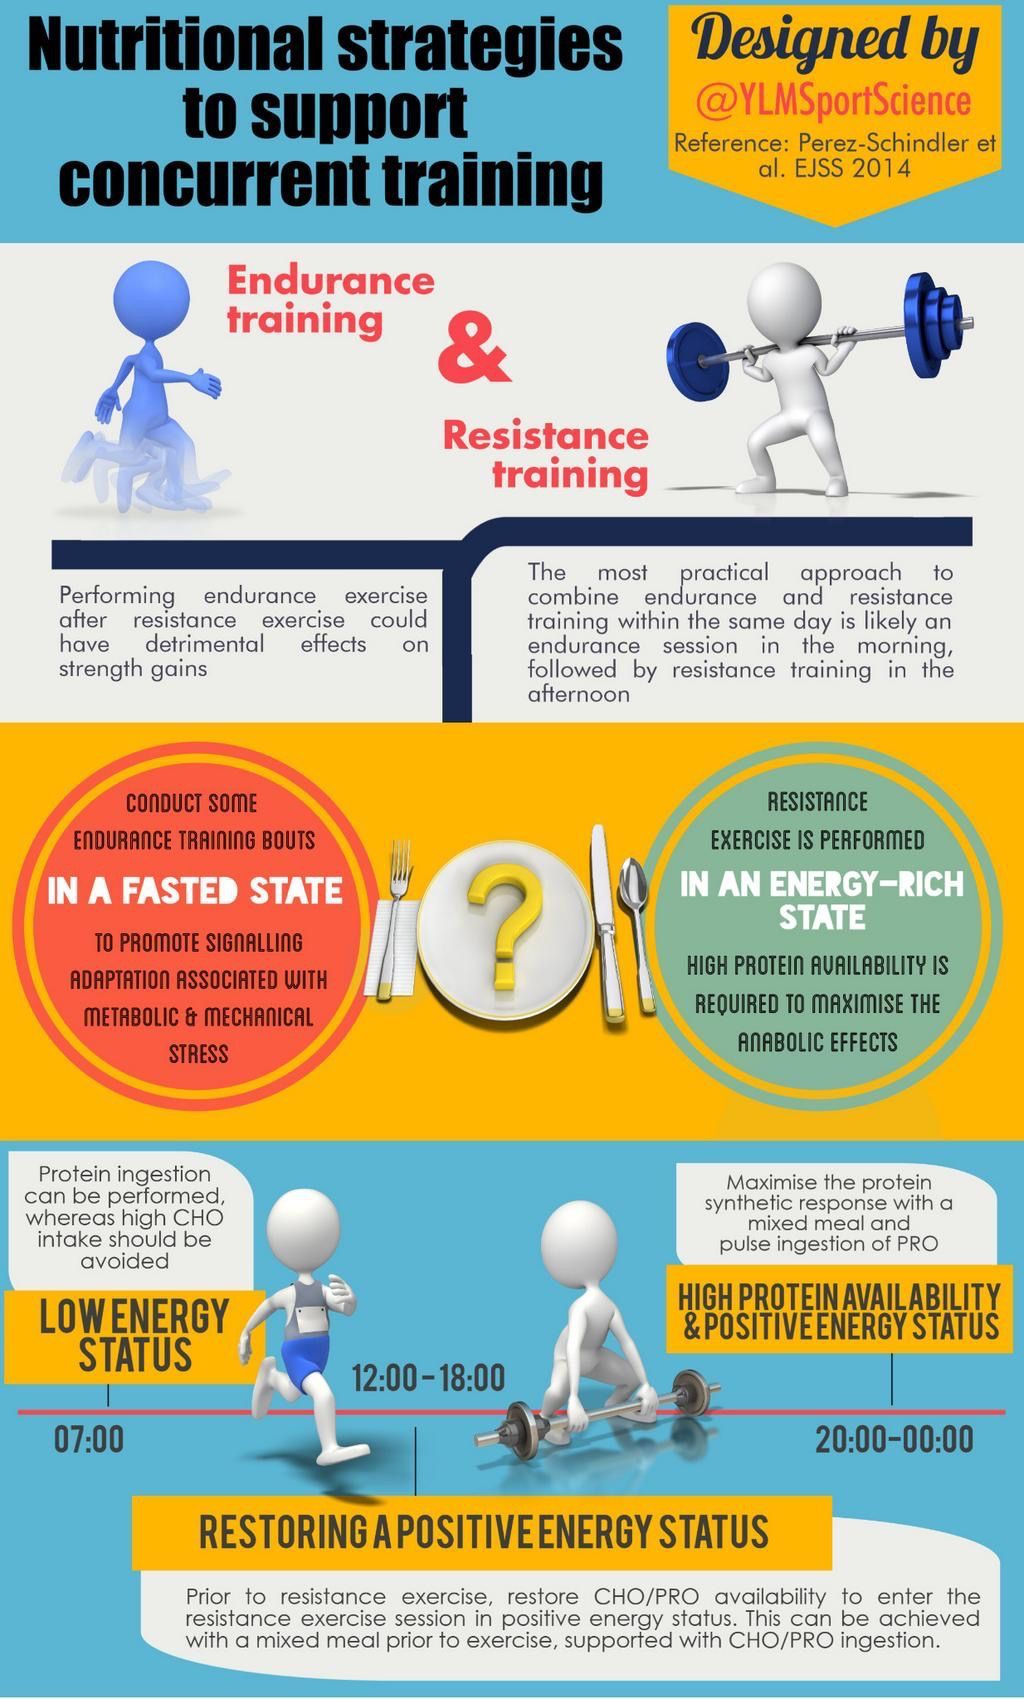 Nutritional strategies during concurrent training.